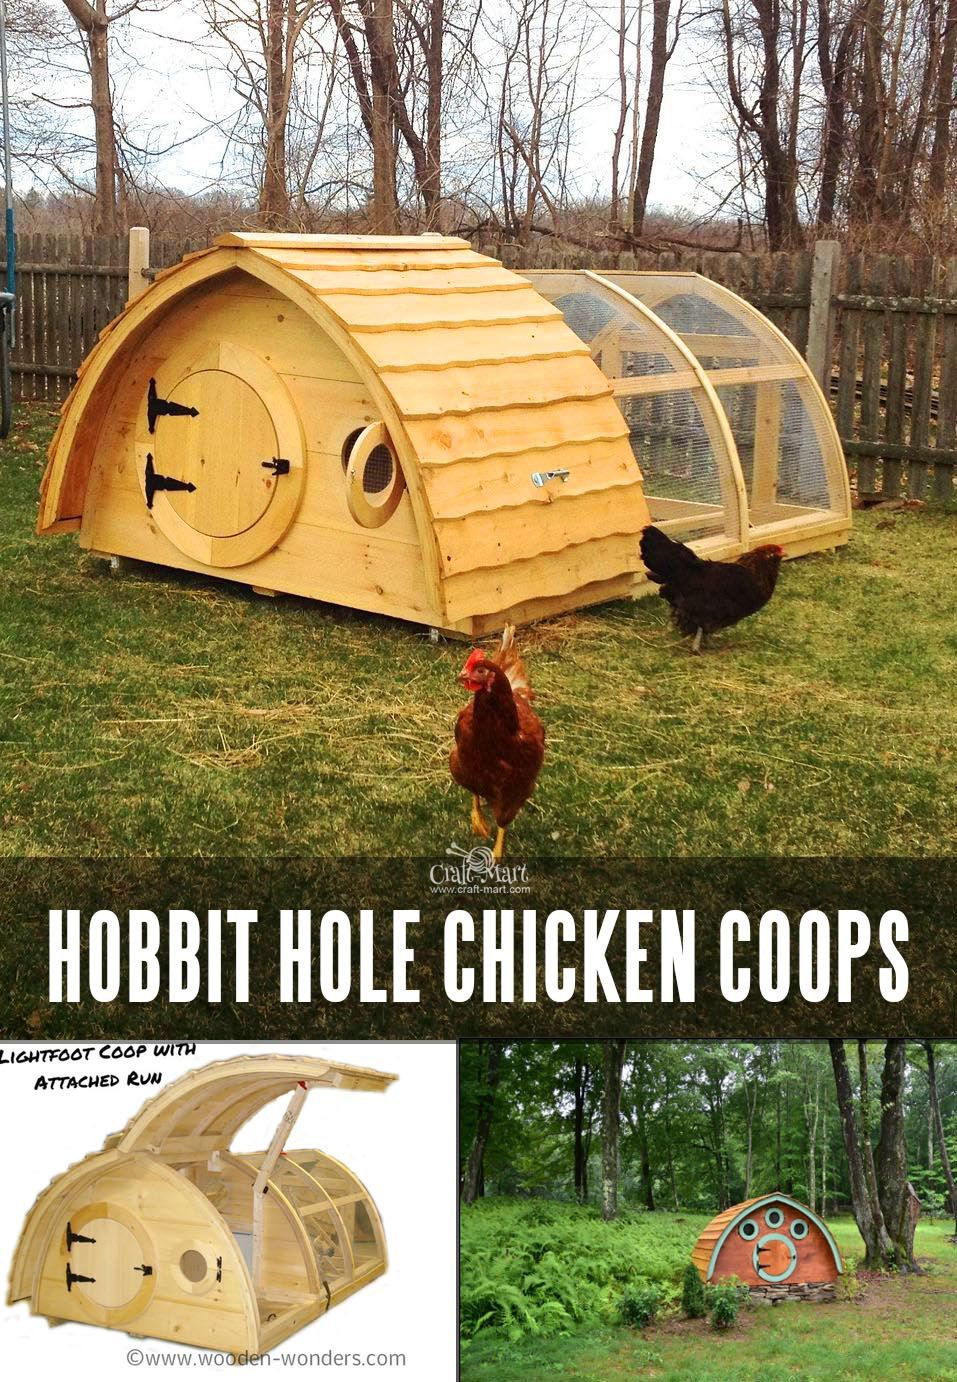 Hobbit-Style Living for Chicks - Hobbit Hole Chicken Coops